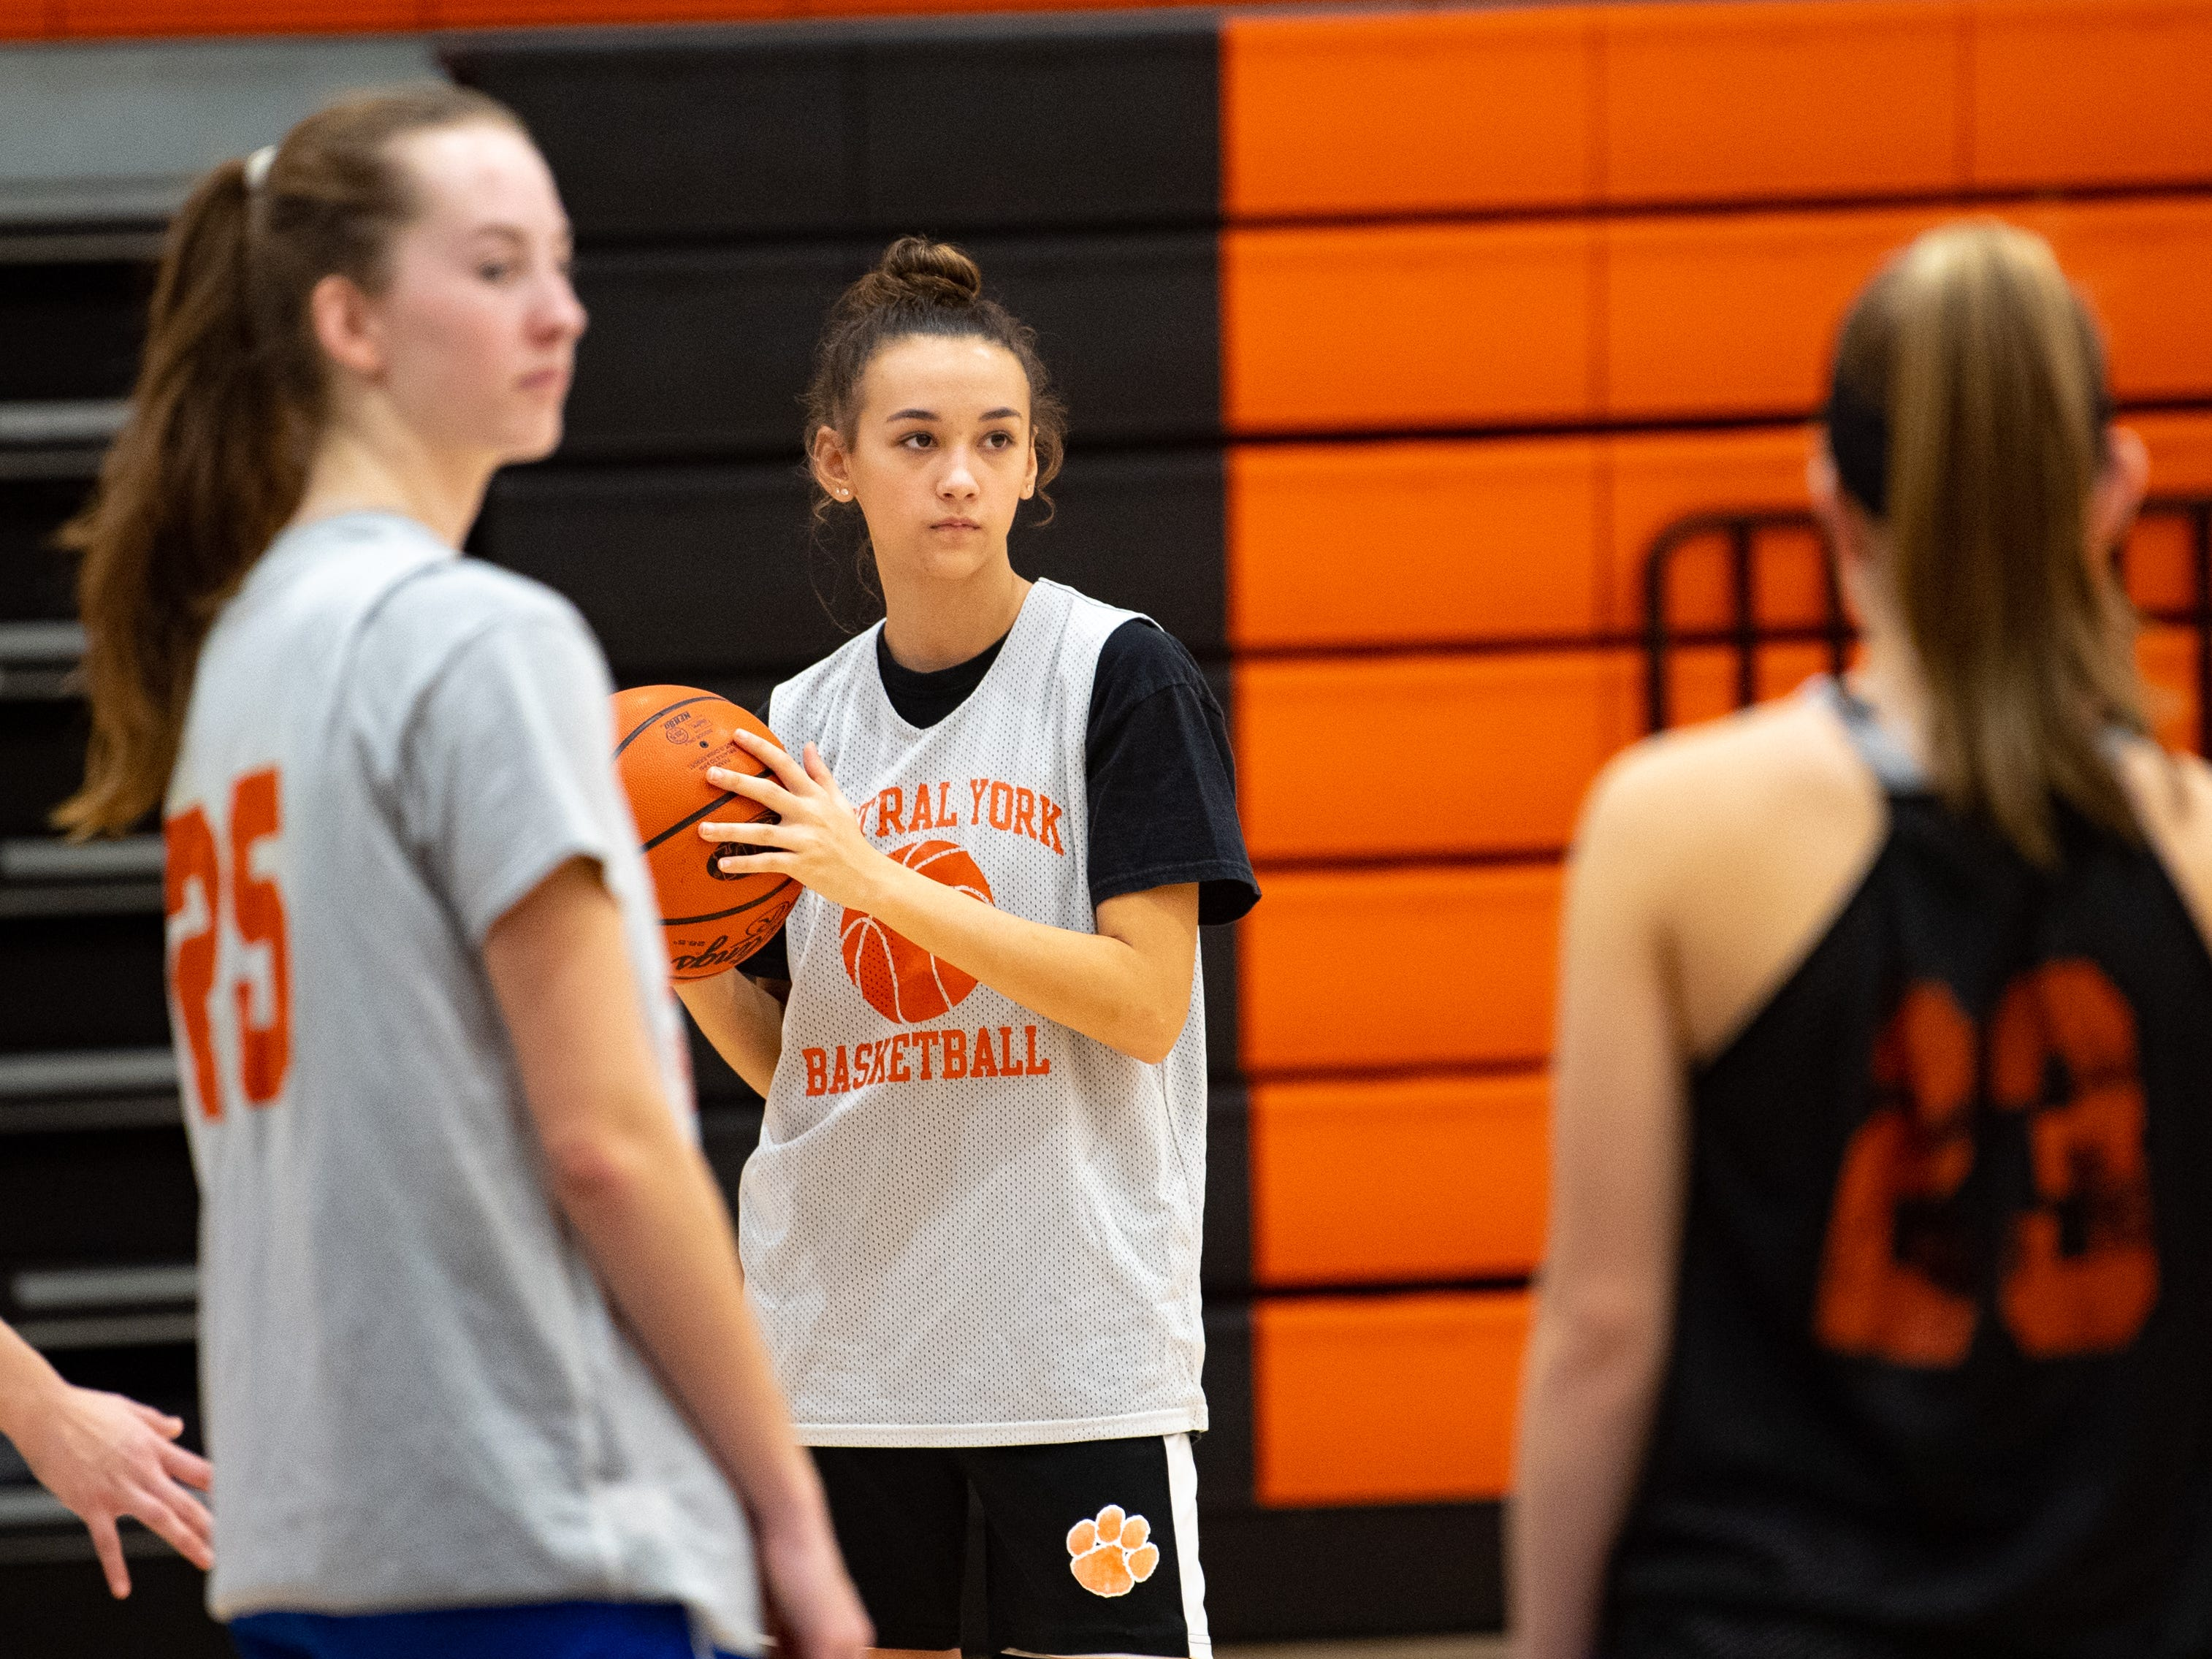 Central York girls' basketball players go over zone defense during practice, Wednesday, November 21, 2018.